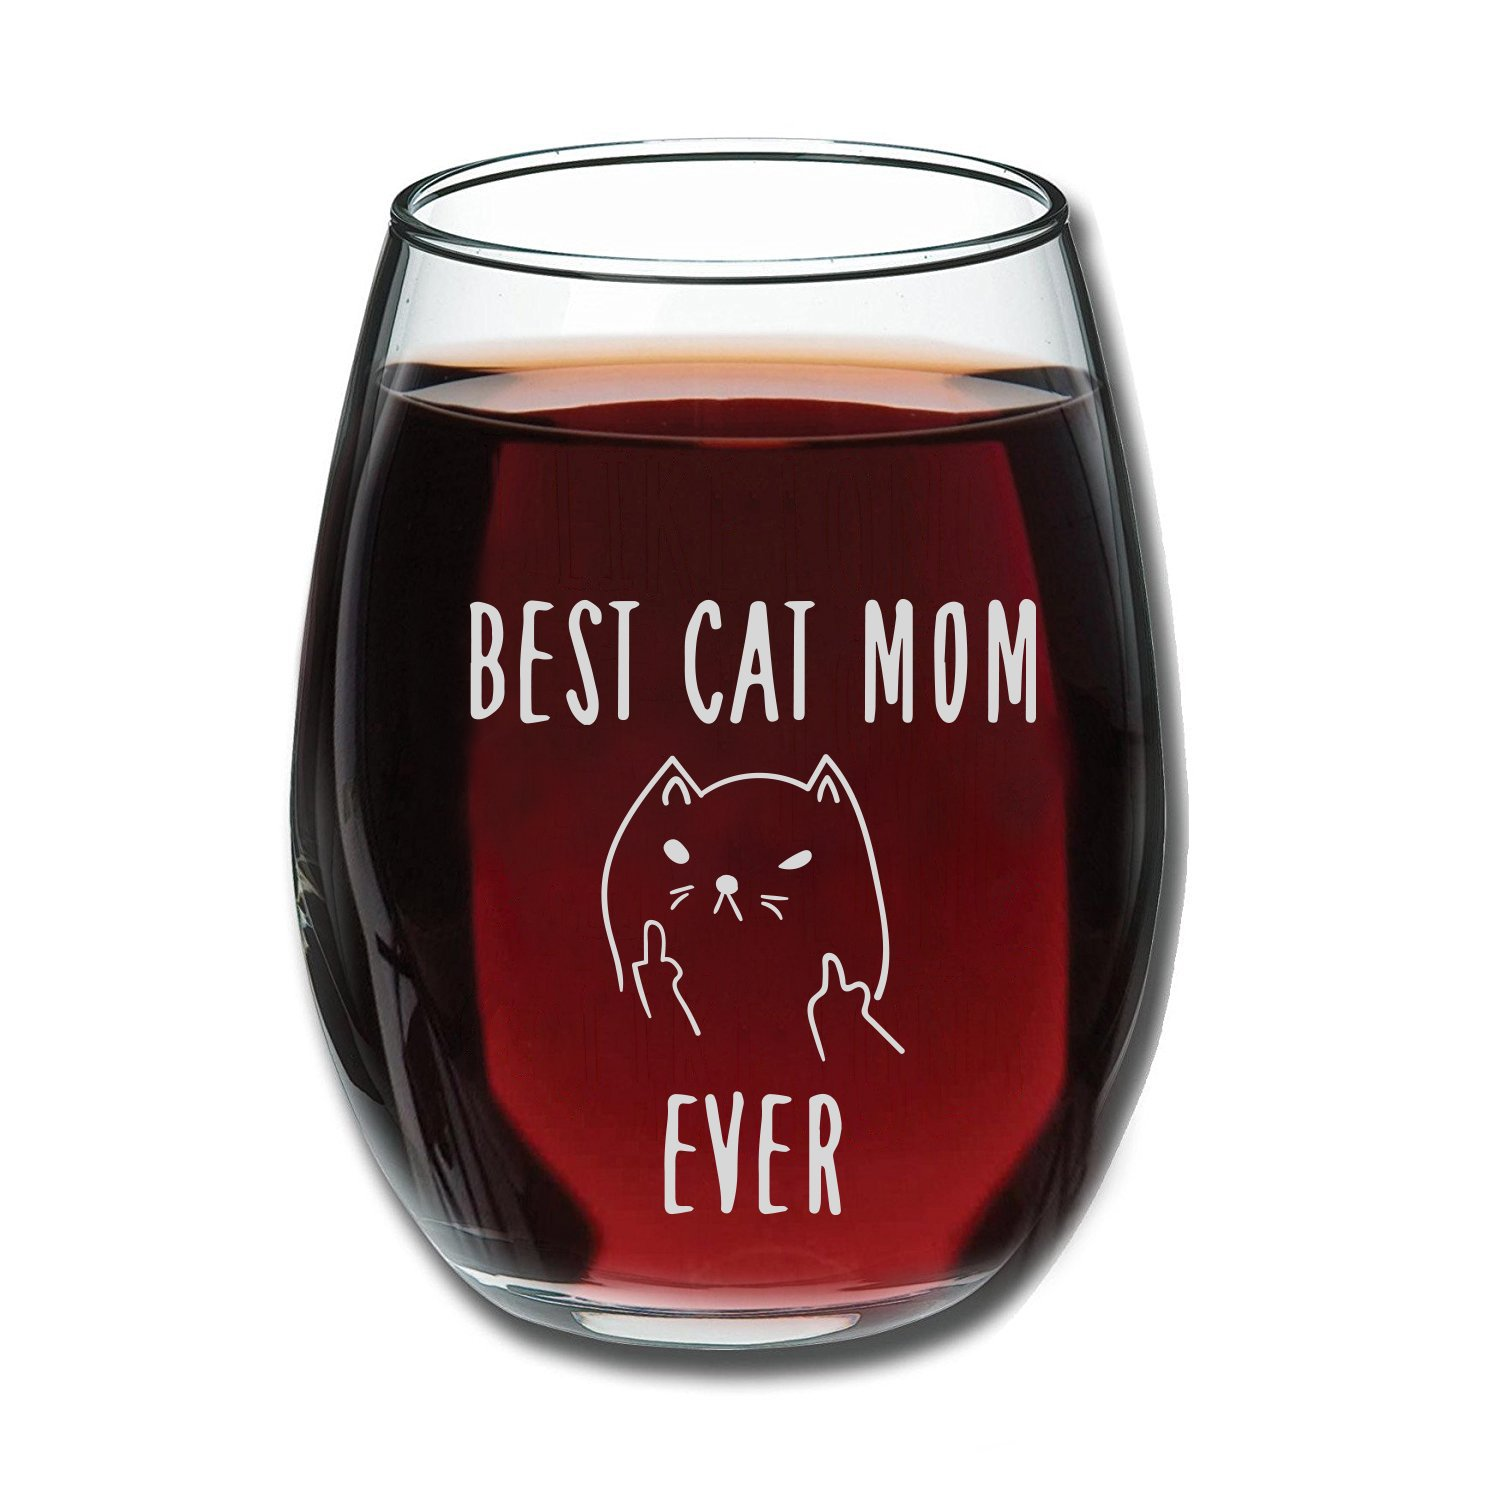 Best Cat Mom Ever Funny Wine Glass 15oz Unique Christmas Gift Idea